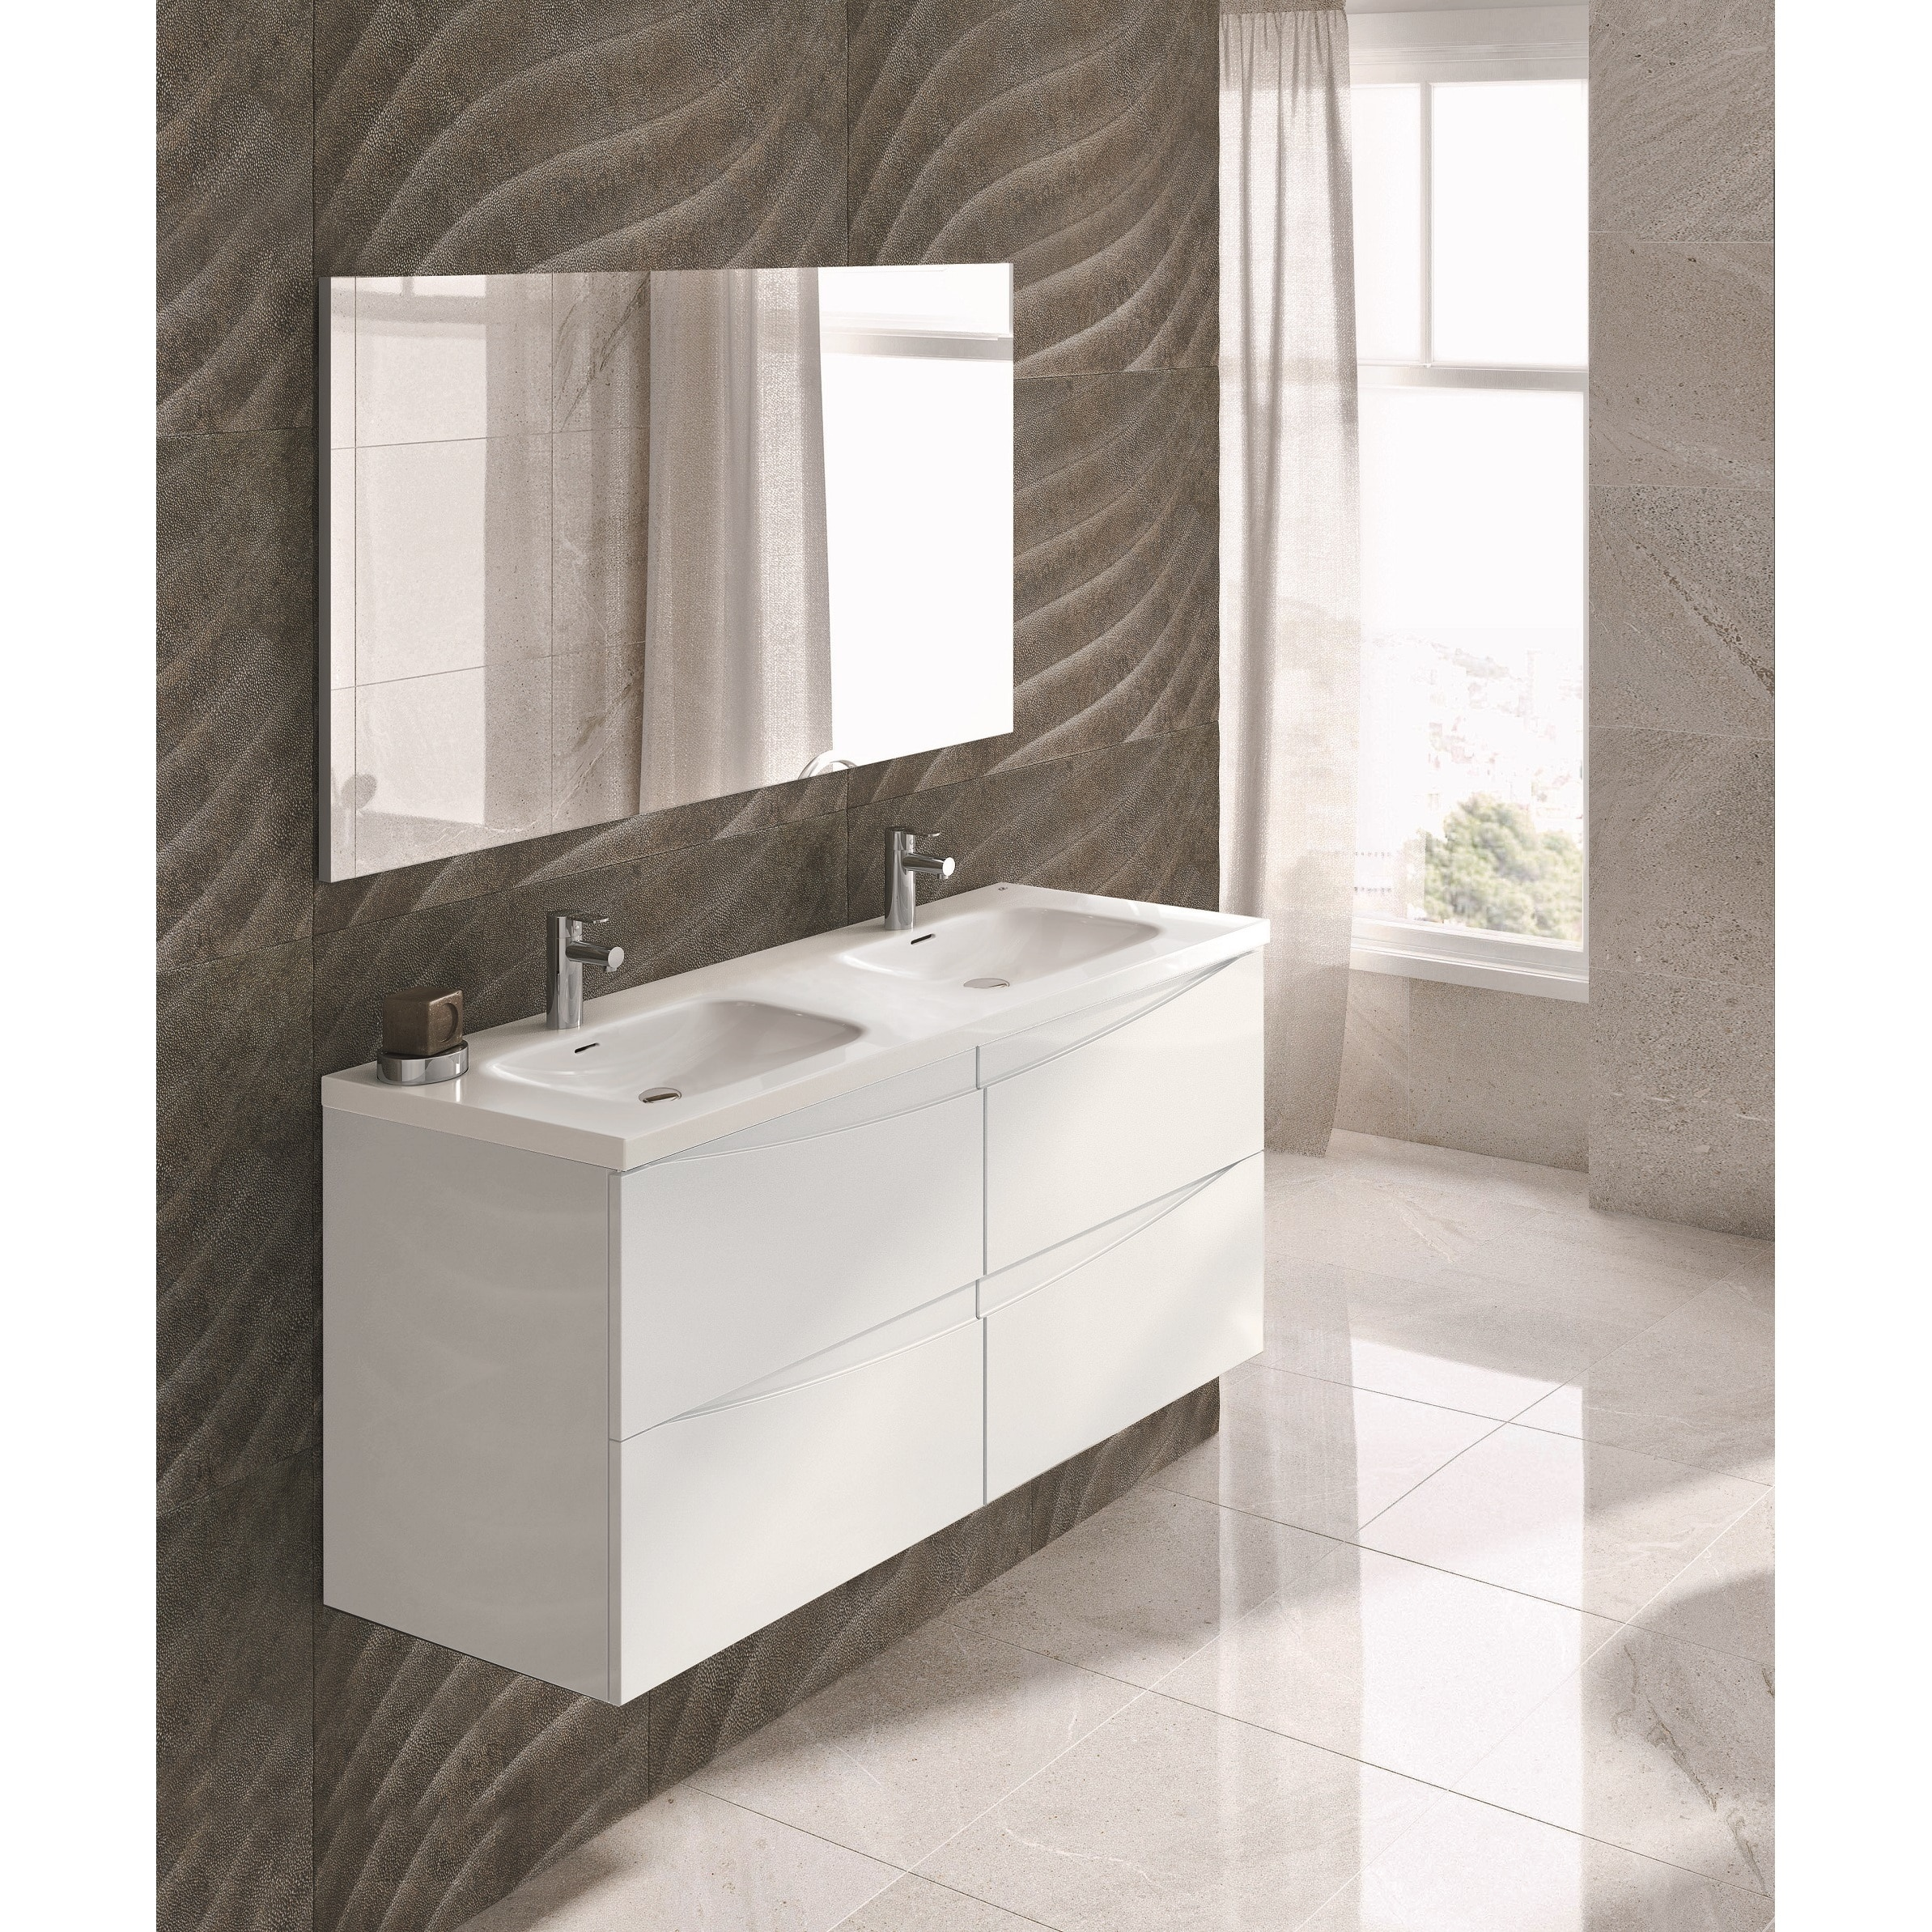 Shop Eviva Rome 48 Inch Integrated Porcelain Double Sink White Bathroom Vanity Overstock 14023831